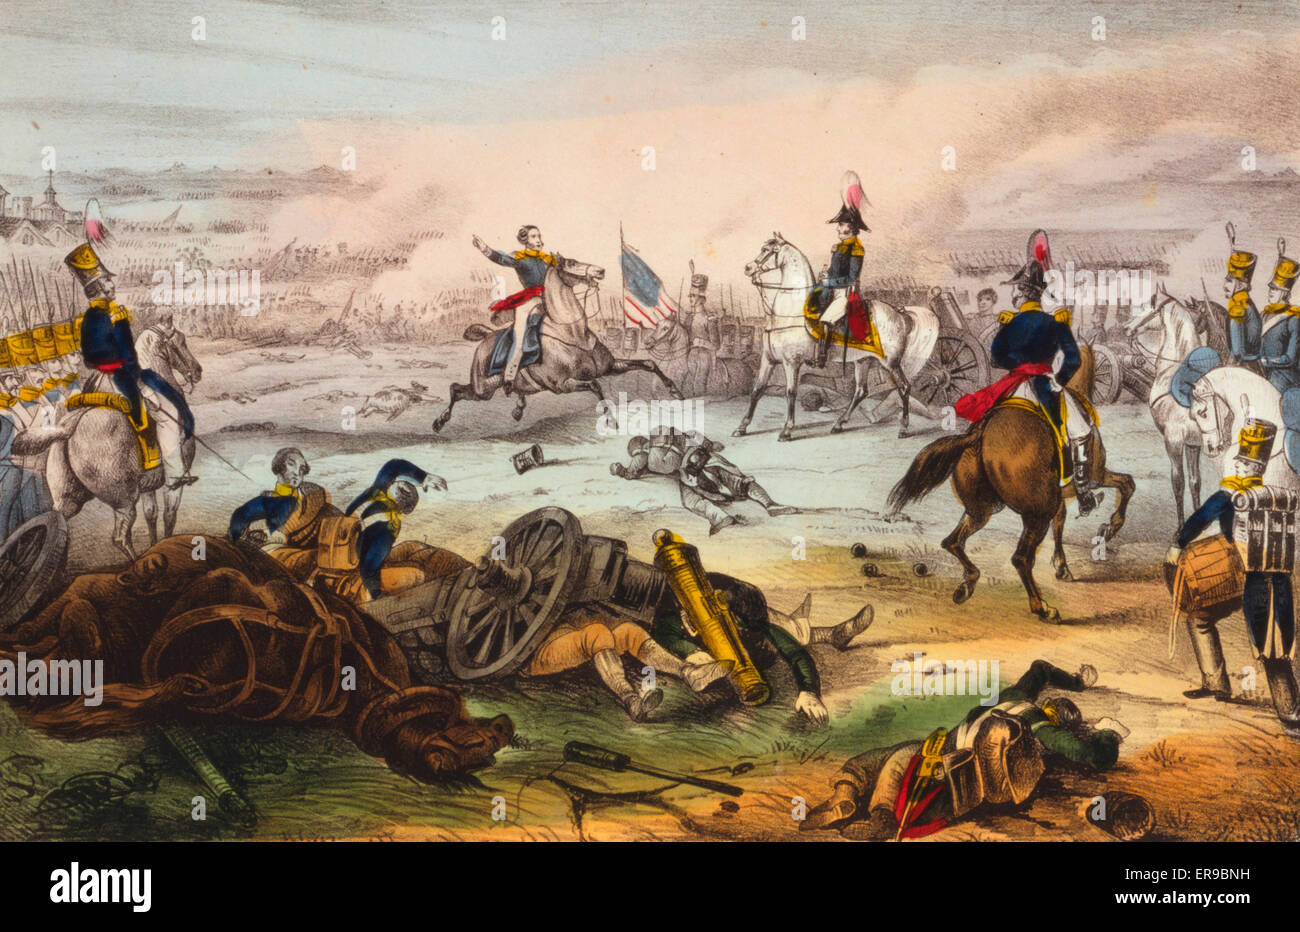 Battle of Mill El Rey--Near the city of Mexico--Sept. 8th 1847. Date 1847 or 1848. - Stock Image